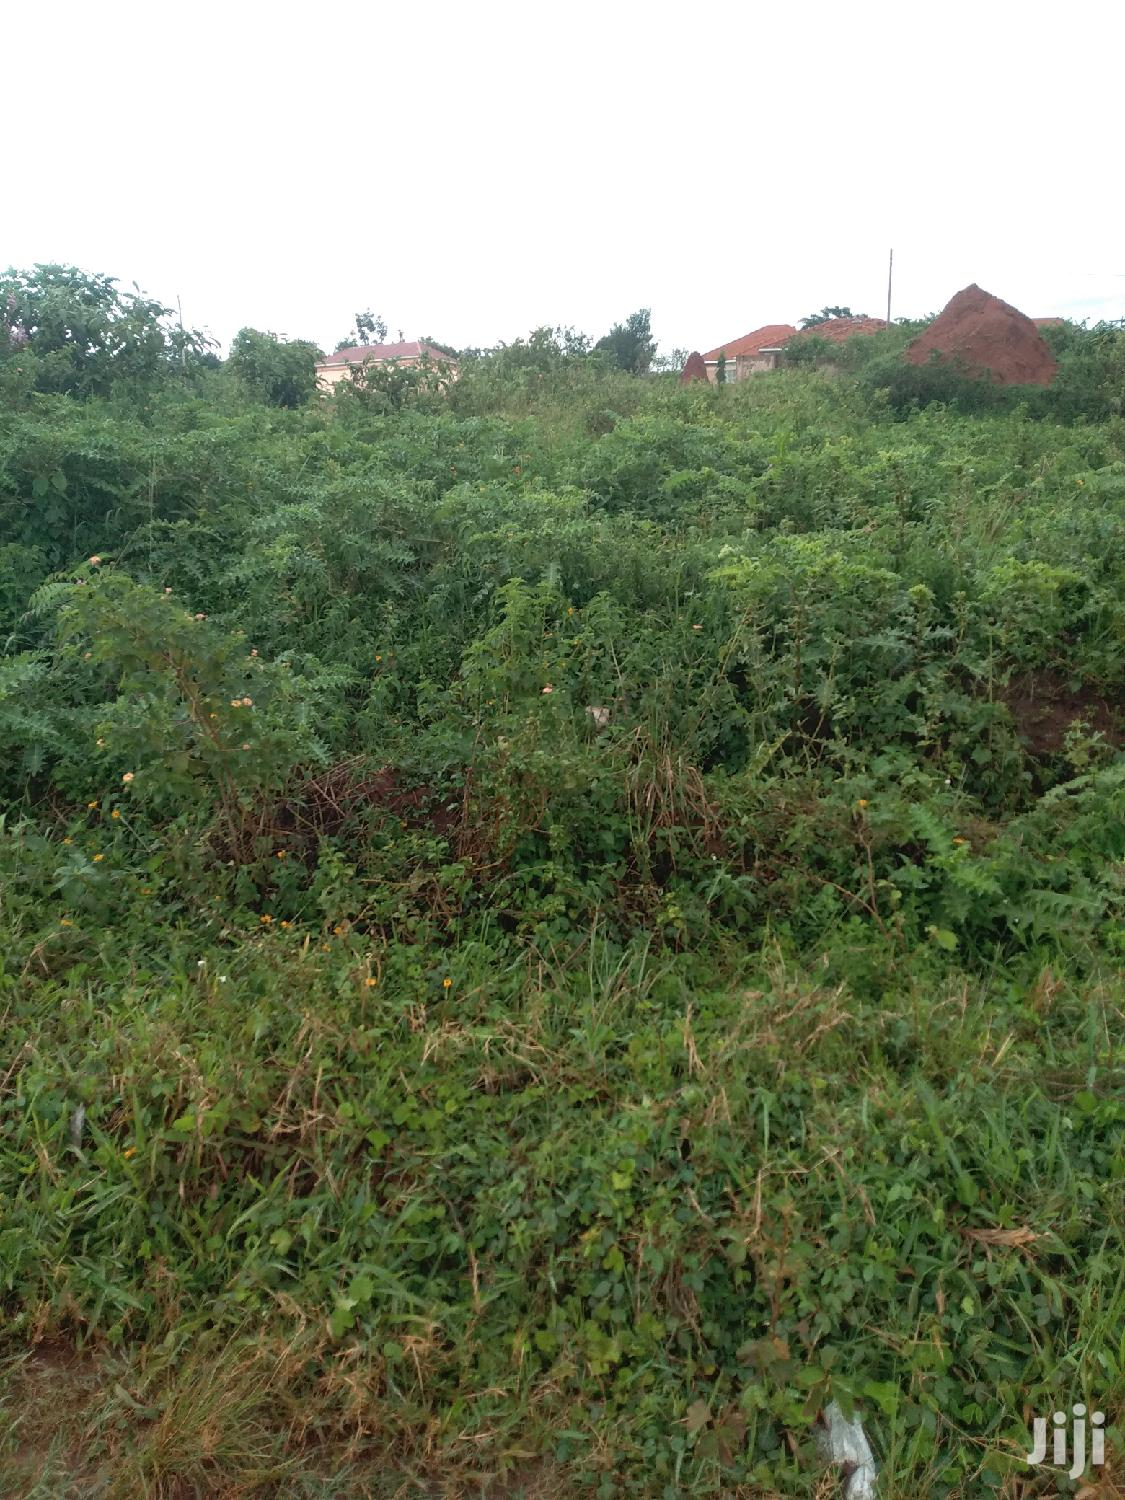 Mukono Titled Plots With a Payment Plan of One Year Power and Water